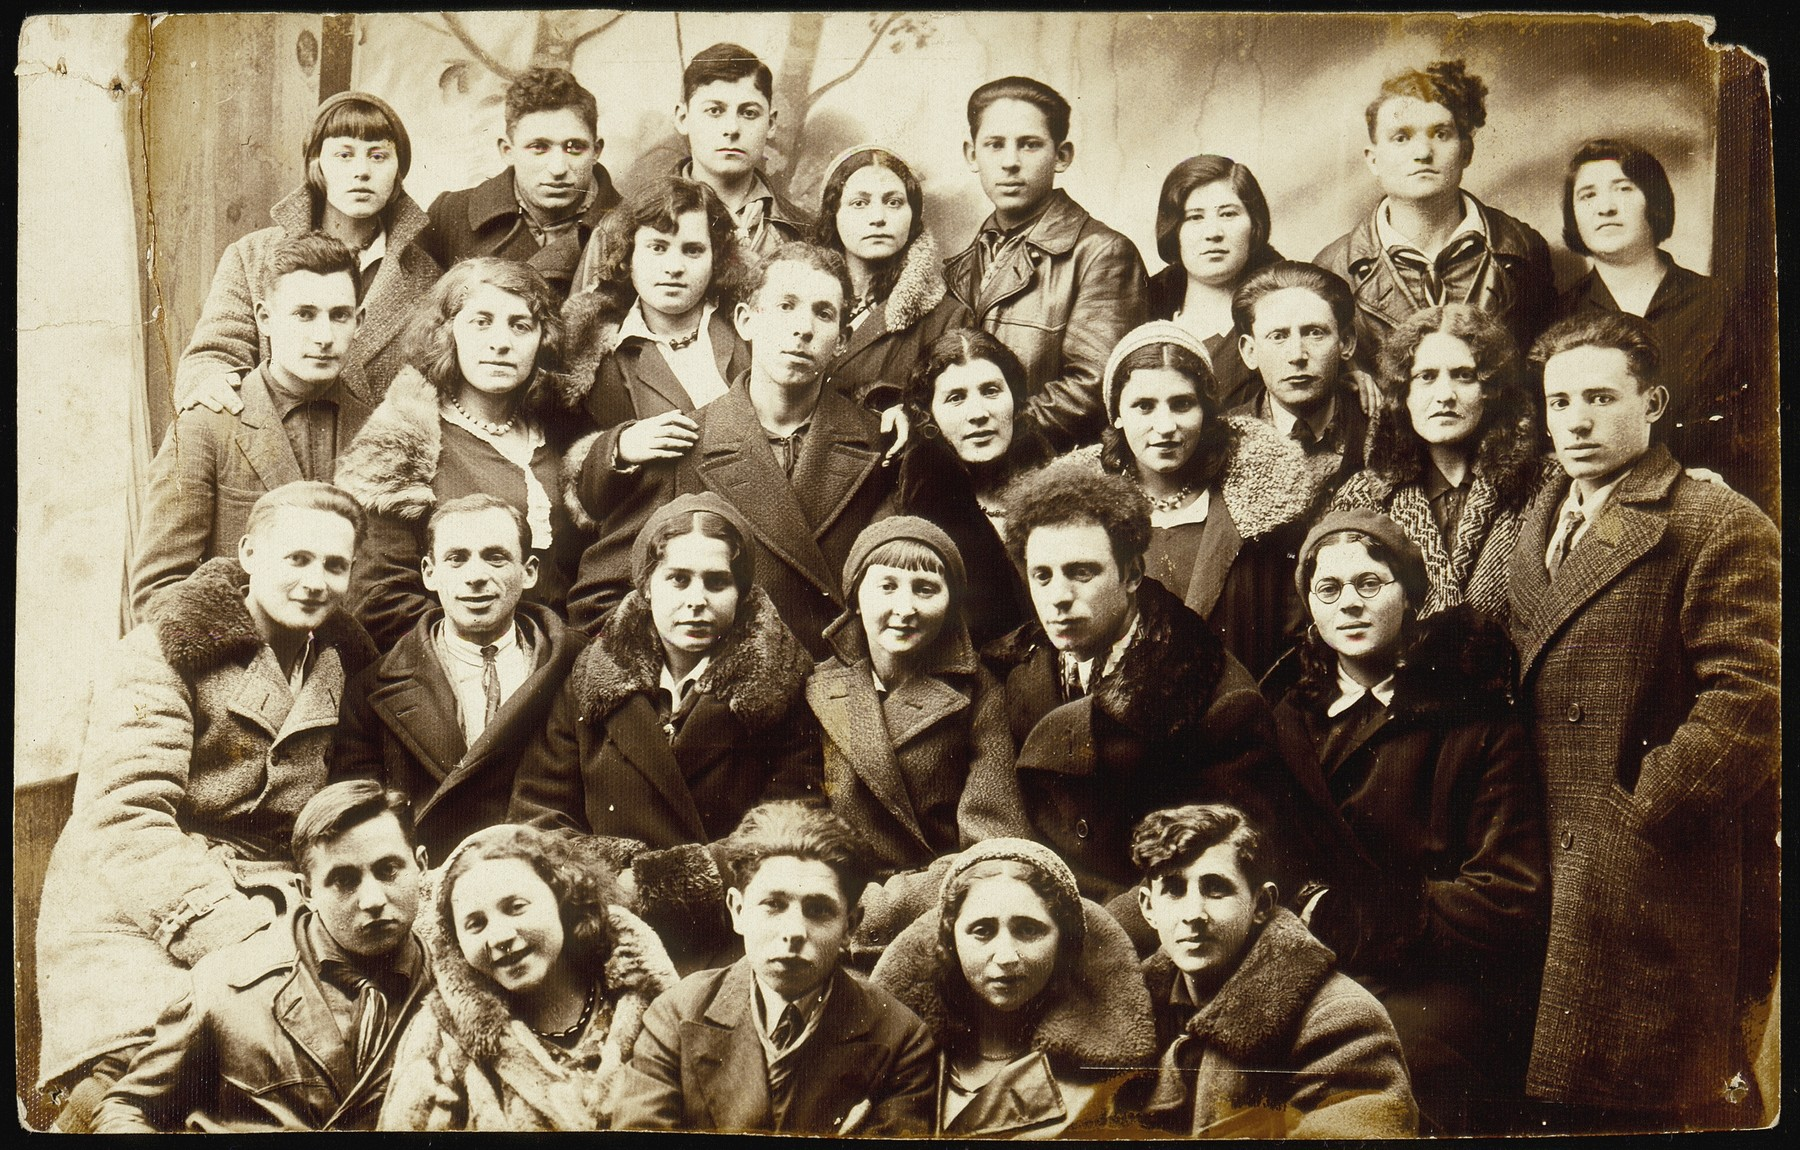 Group portrait of members of the Zionist youth movement, Hashomer Hatzair, from Eisiskes and surrounding towns.      Among those pictured are: back row, right to left: Hinde Gutlevski, visitor, Reshke Gutlevski, visitor, Kreinke Bichwid, Muni Zahavi, Bichwid (sister of Kreinke); second row from the top, right to left:  Motke Burstein, Flora Kagan, Shmuel Berkowicz, unknown, Matikanski, unknown, Bichwid (first name unknown), Rina Lewinson, Hanan Polaczek; third row from the top, right to left: Etele Lubetski, visitor, Esther Katz Resnik, Miriam Koppelman Ruskin, Hayyim Streletski, unknown; front row, right to left: visitor from Olkeniki, Bavale Polaczek, visitor, Leipke Politacki, visitor.    Muni Zahavi, Rina Lewinson, Shmuel Berkowicz immigrated to Palestine.  All the others were murdered during the Holocaust.